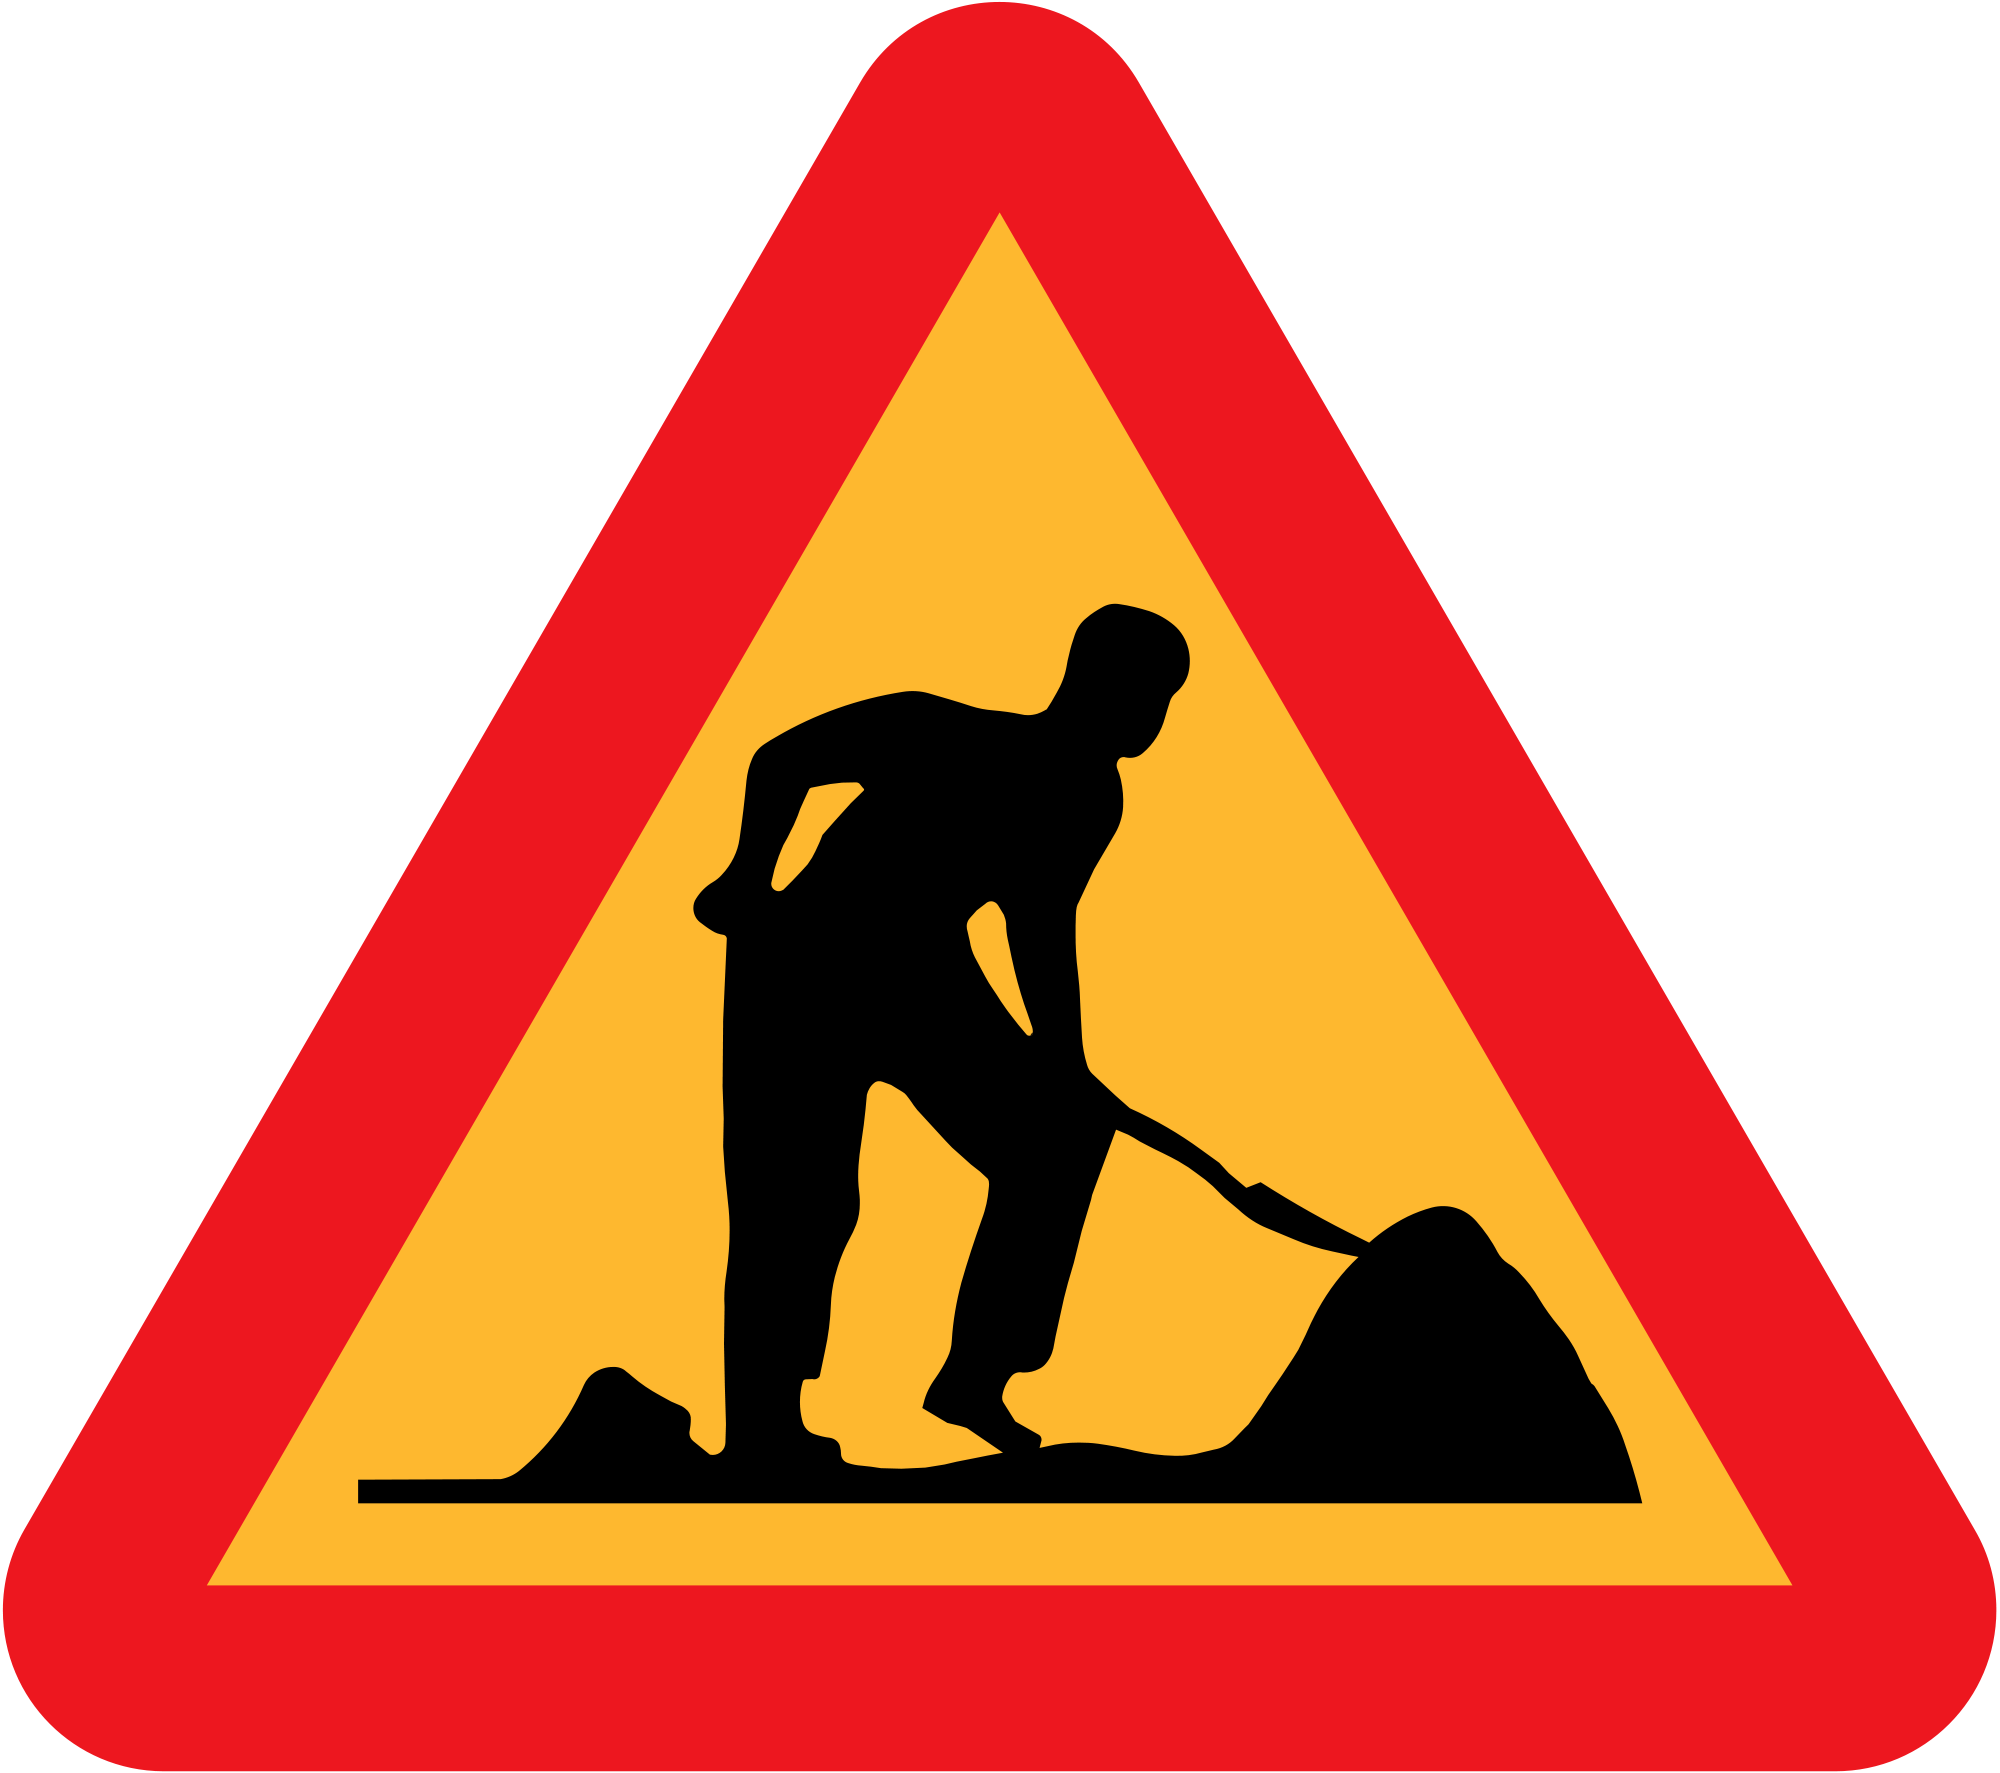 Under construction sign png. File underconstruction svg wikimedia